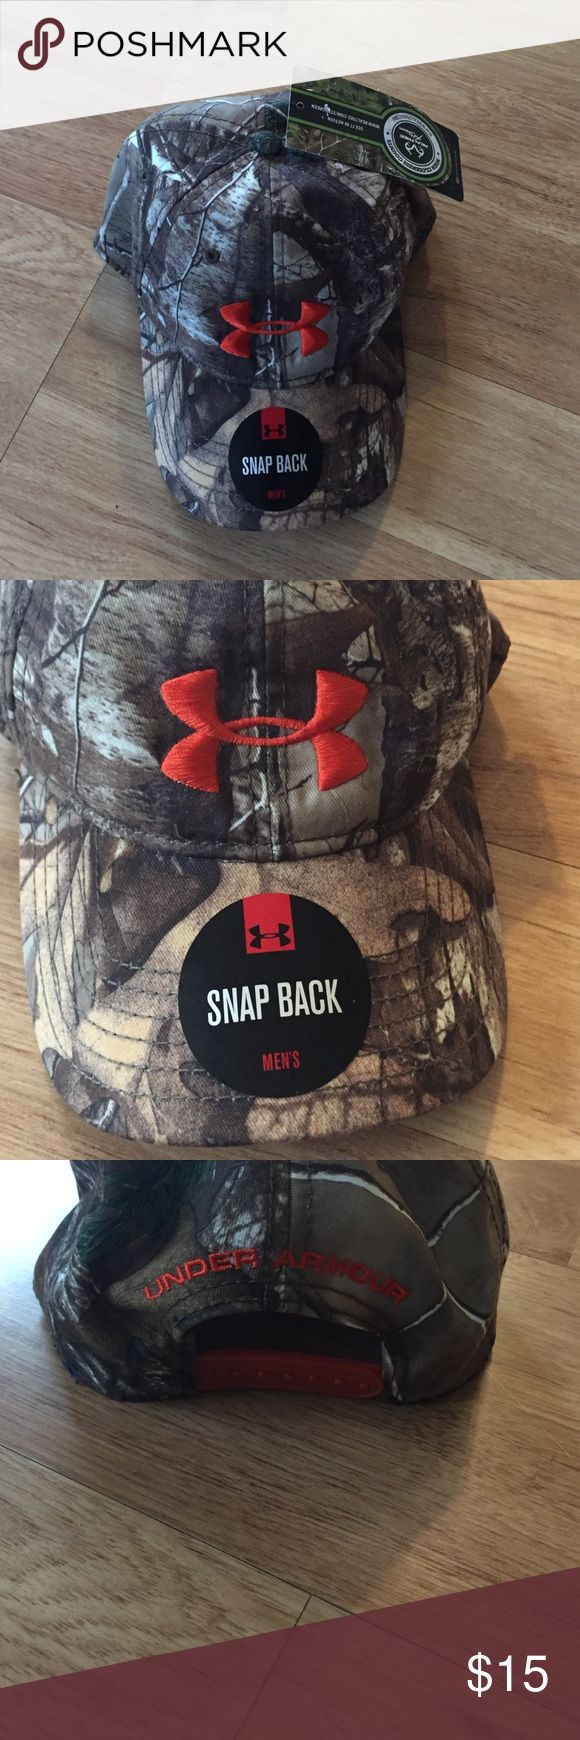 Brand new with tags Under Armour camouflage hat✨ Brand new with tags Under Armour camouflage hat✨ perfect condition.. under Armour/ real tree Under Armour Accessories Hats